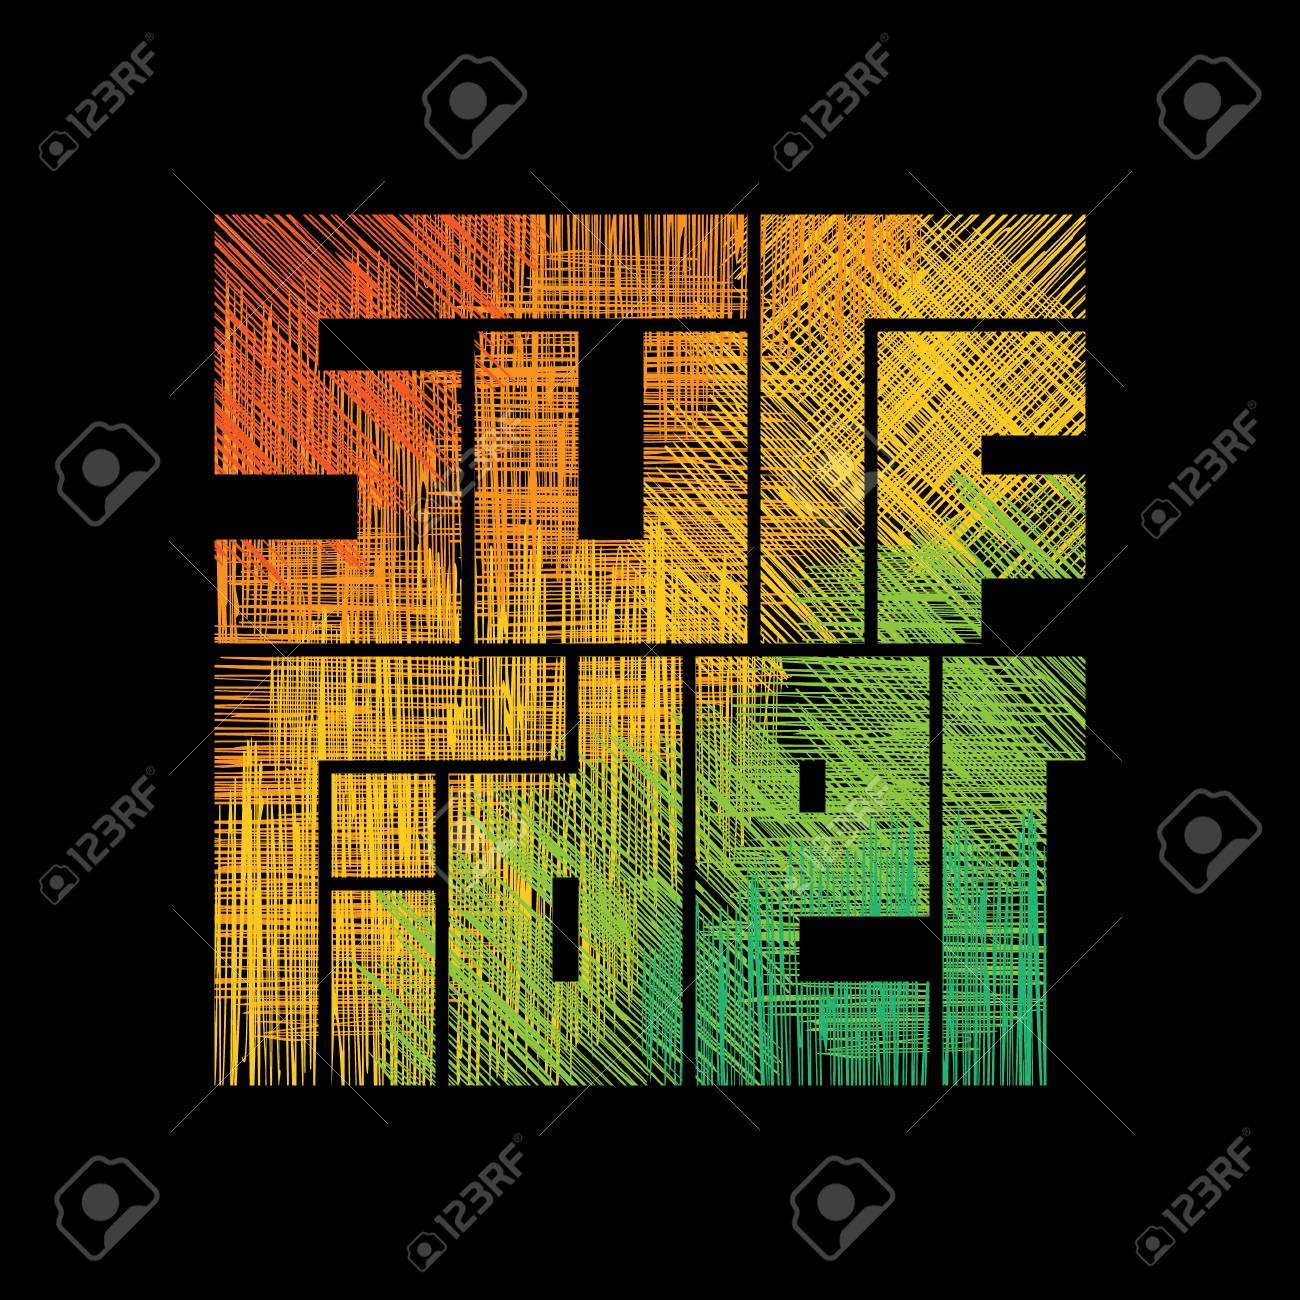 Surf Rider Typography Poster Concept For Print Production T Shirt Royalty Free Cliparts Vectors And Stock Illustration Image 111634671